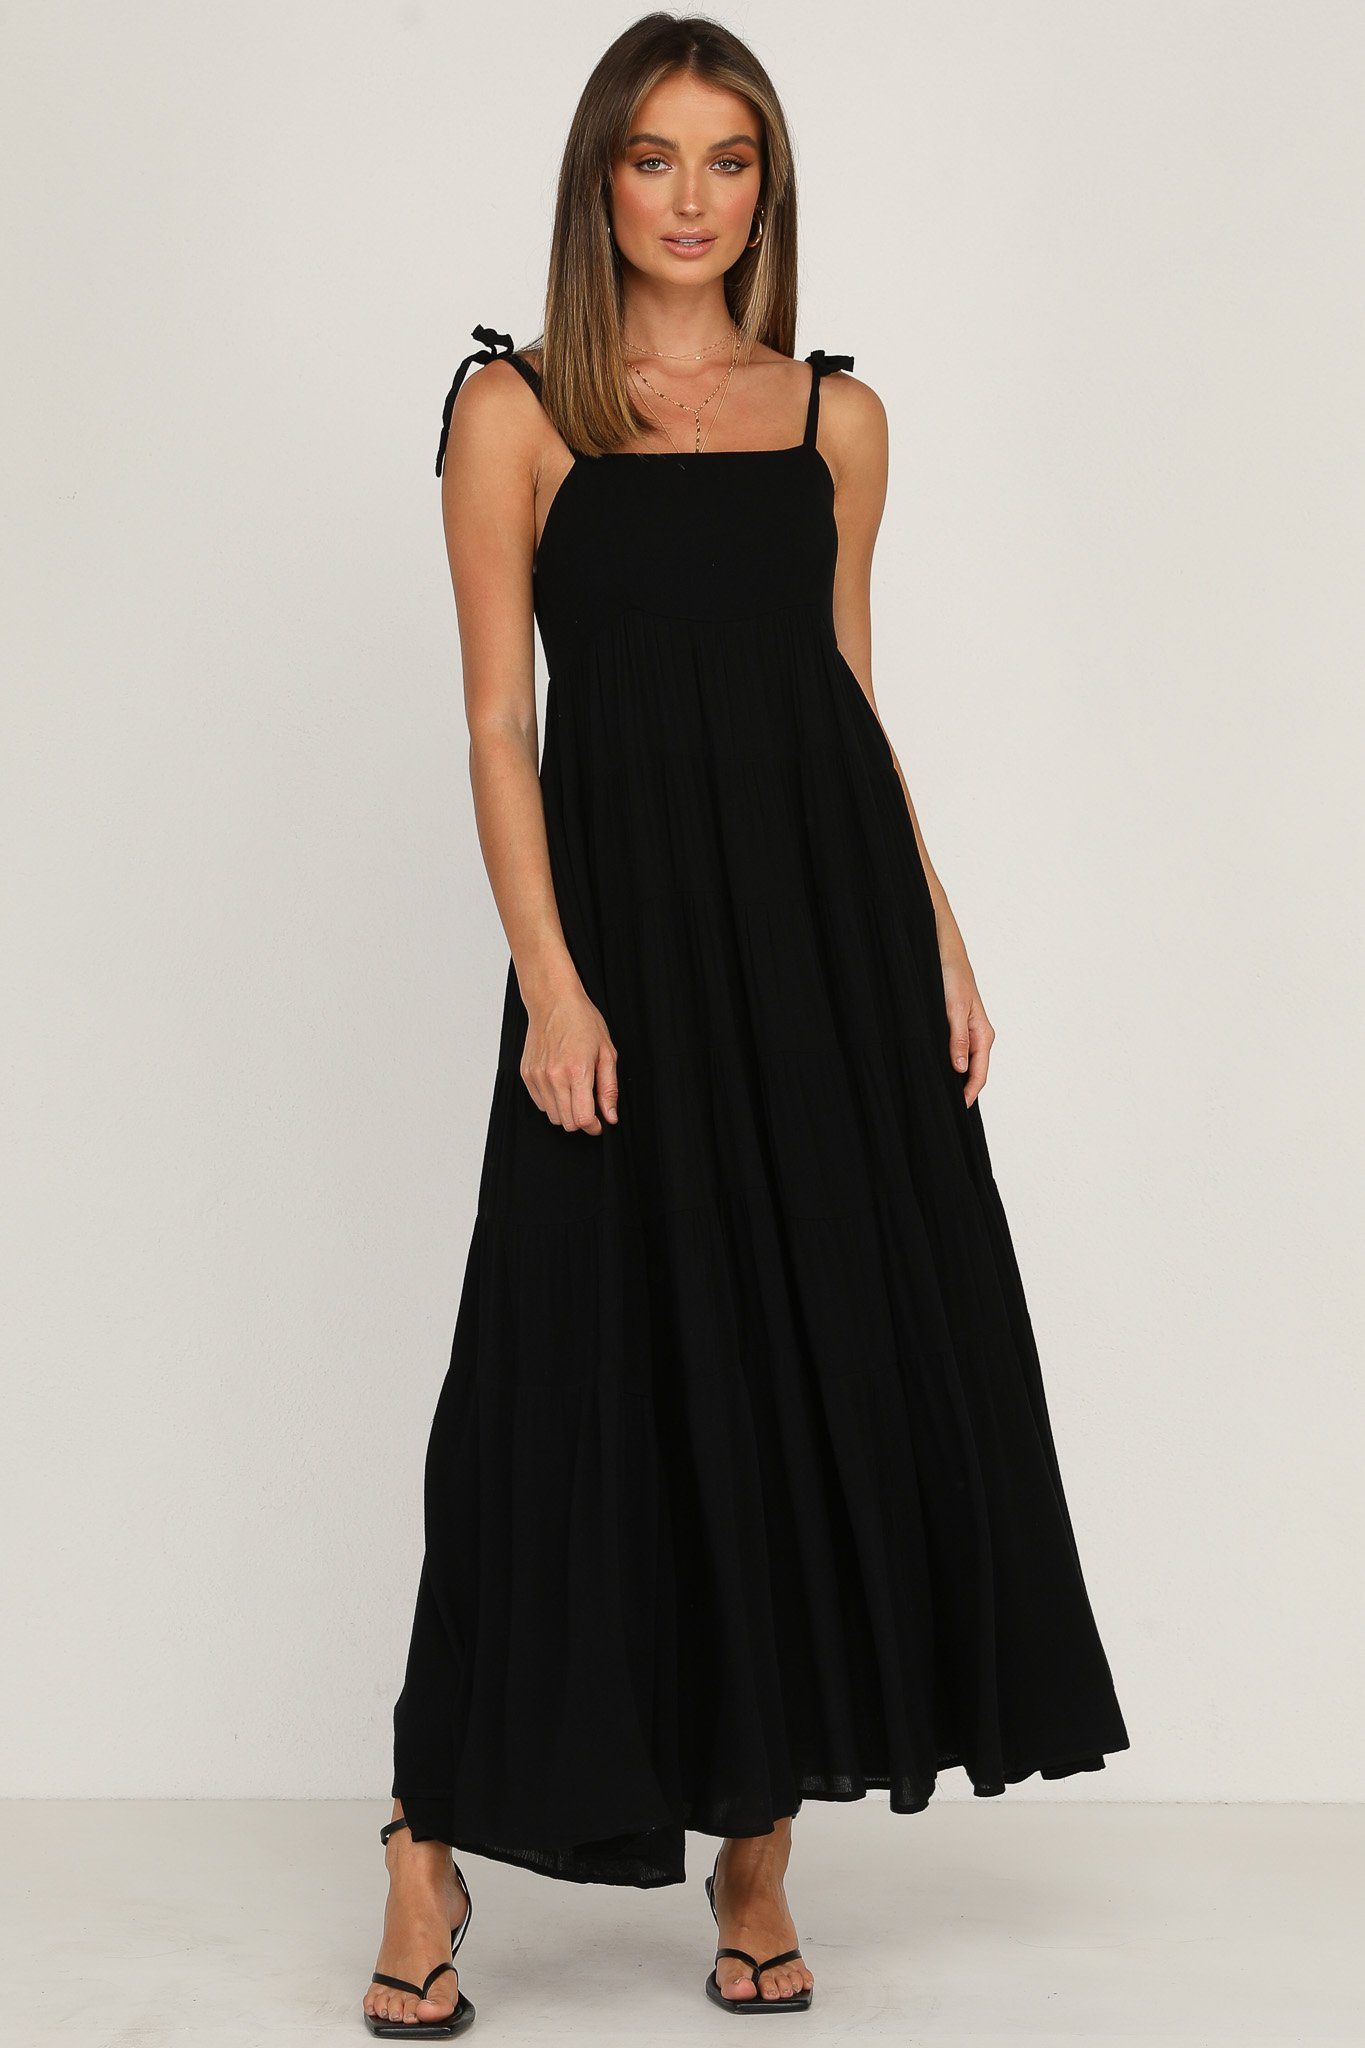 ZNX CLOTHING |  Women Solid Black Tiered Maxi Dress